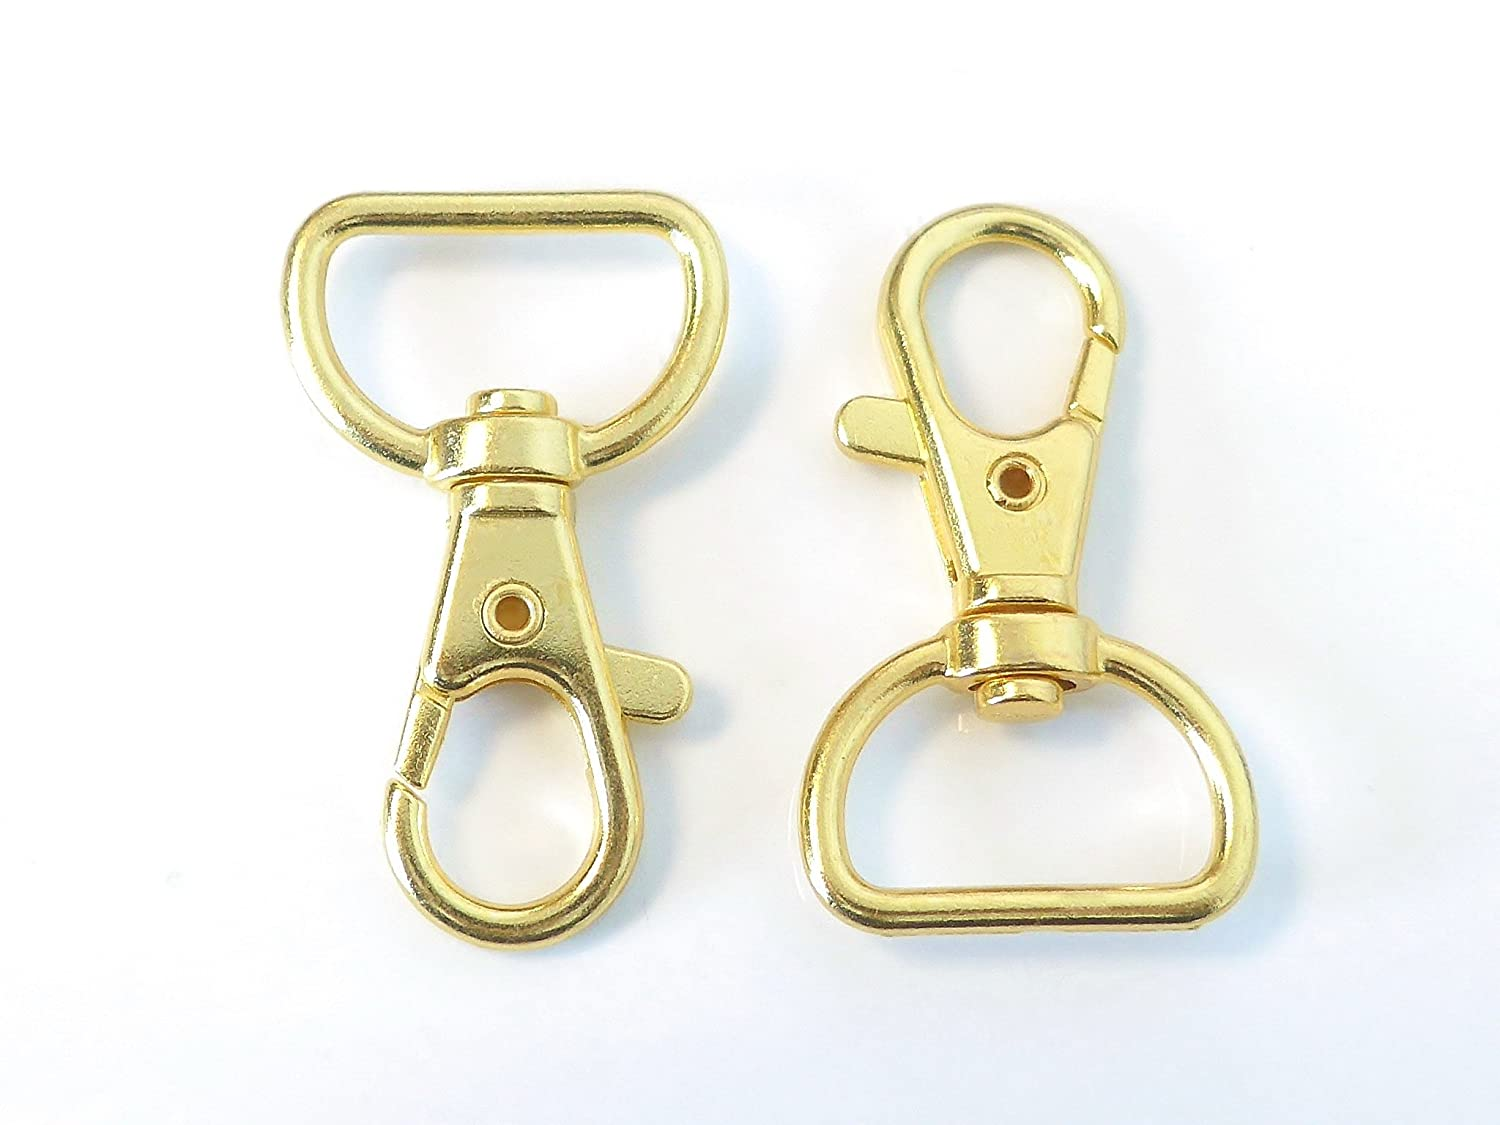 "Gold Plated Swivel Clasps Lanyard Snap Hook Lobster Claw Clasp Jewelry Findings 1 5/8"" x 1"" Pack of 50"